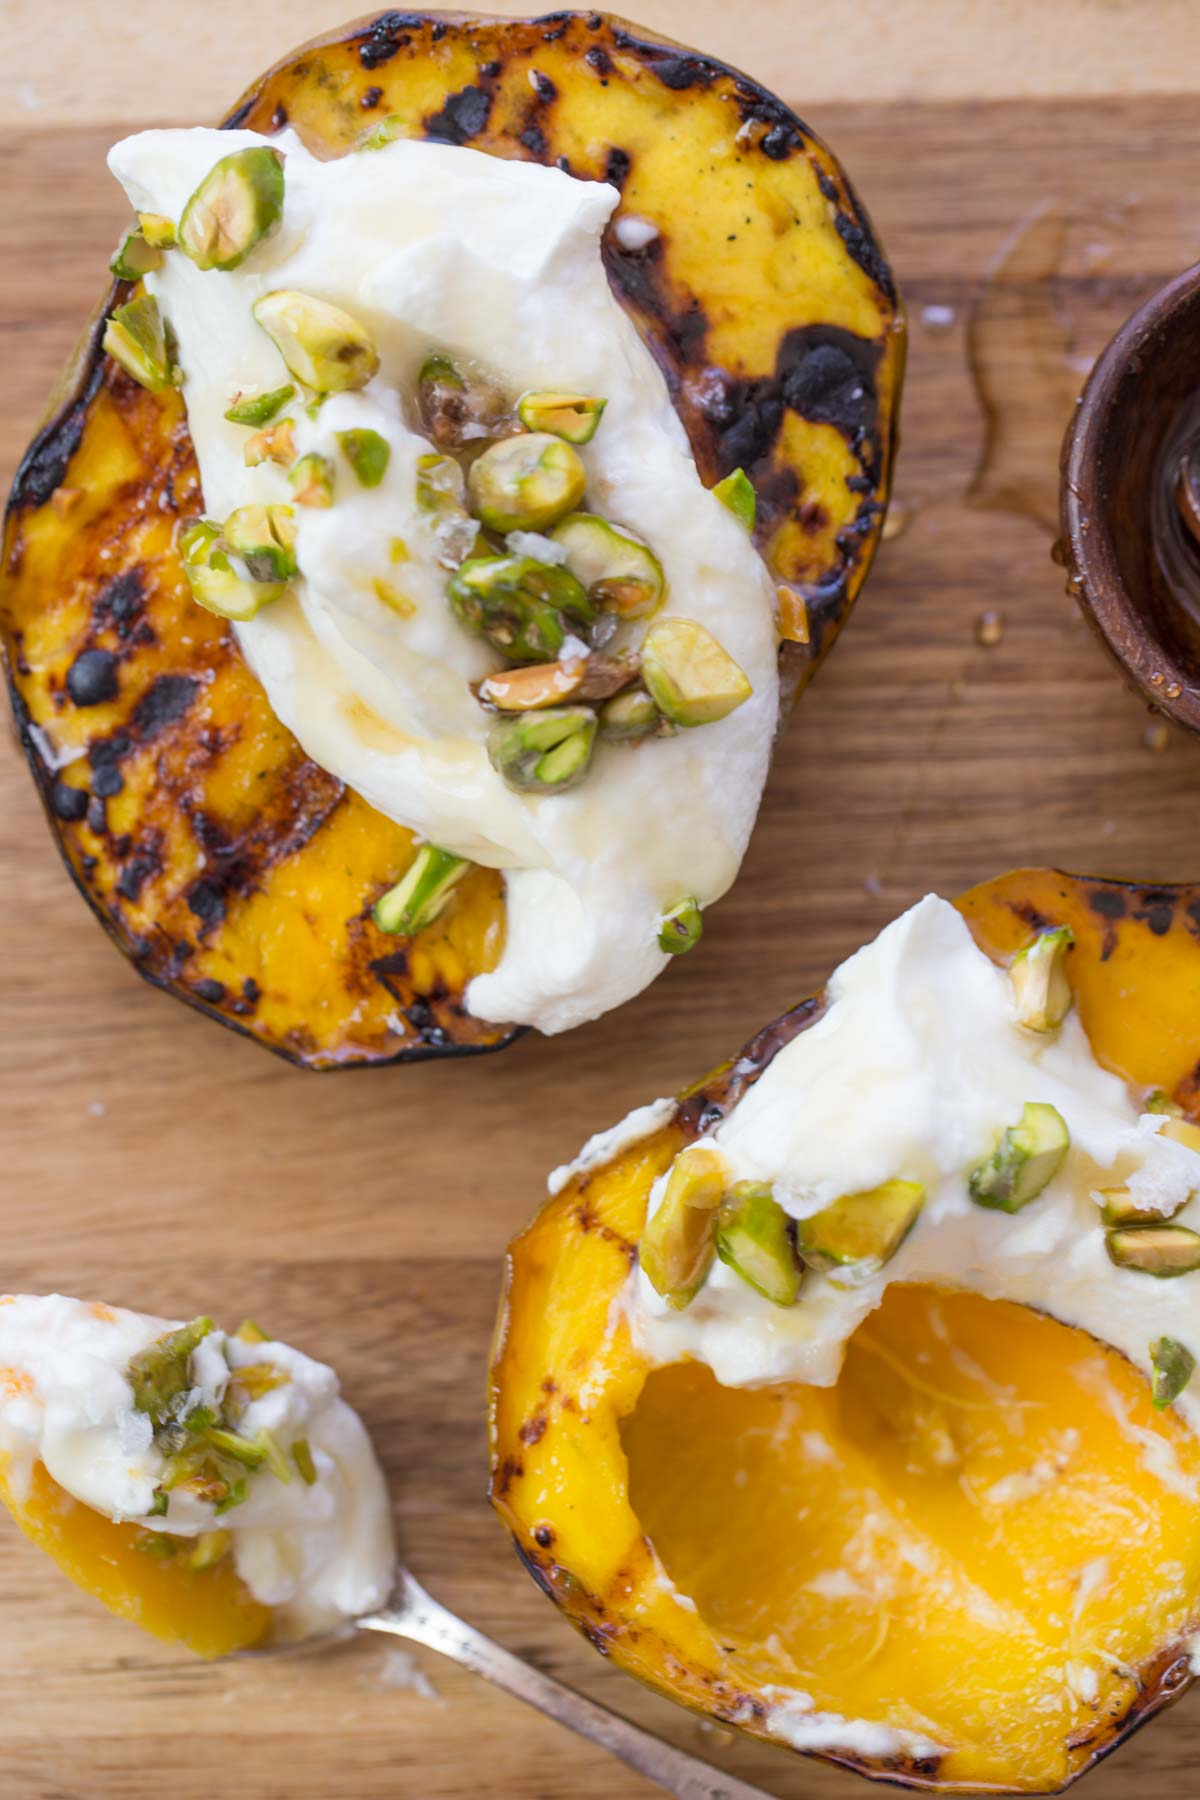 Grilled Mango With Honey Ricotta Whipped Cream on a wooden board.